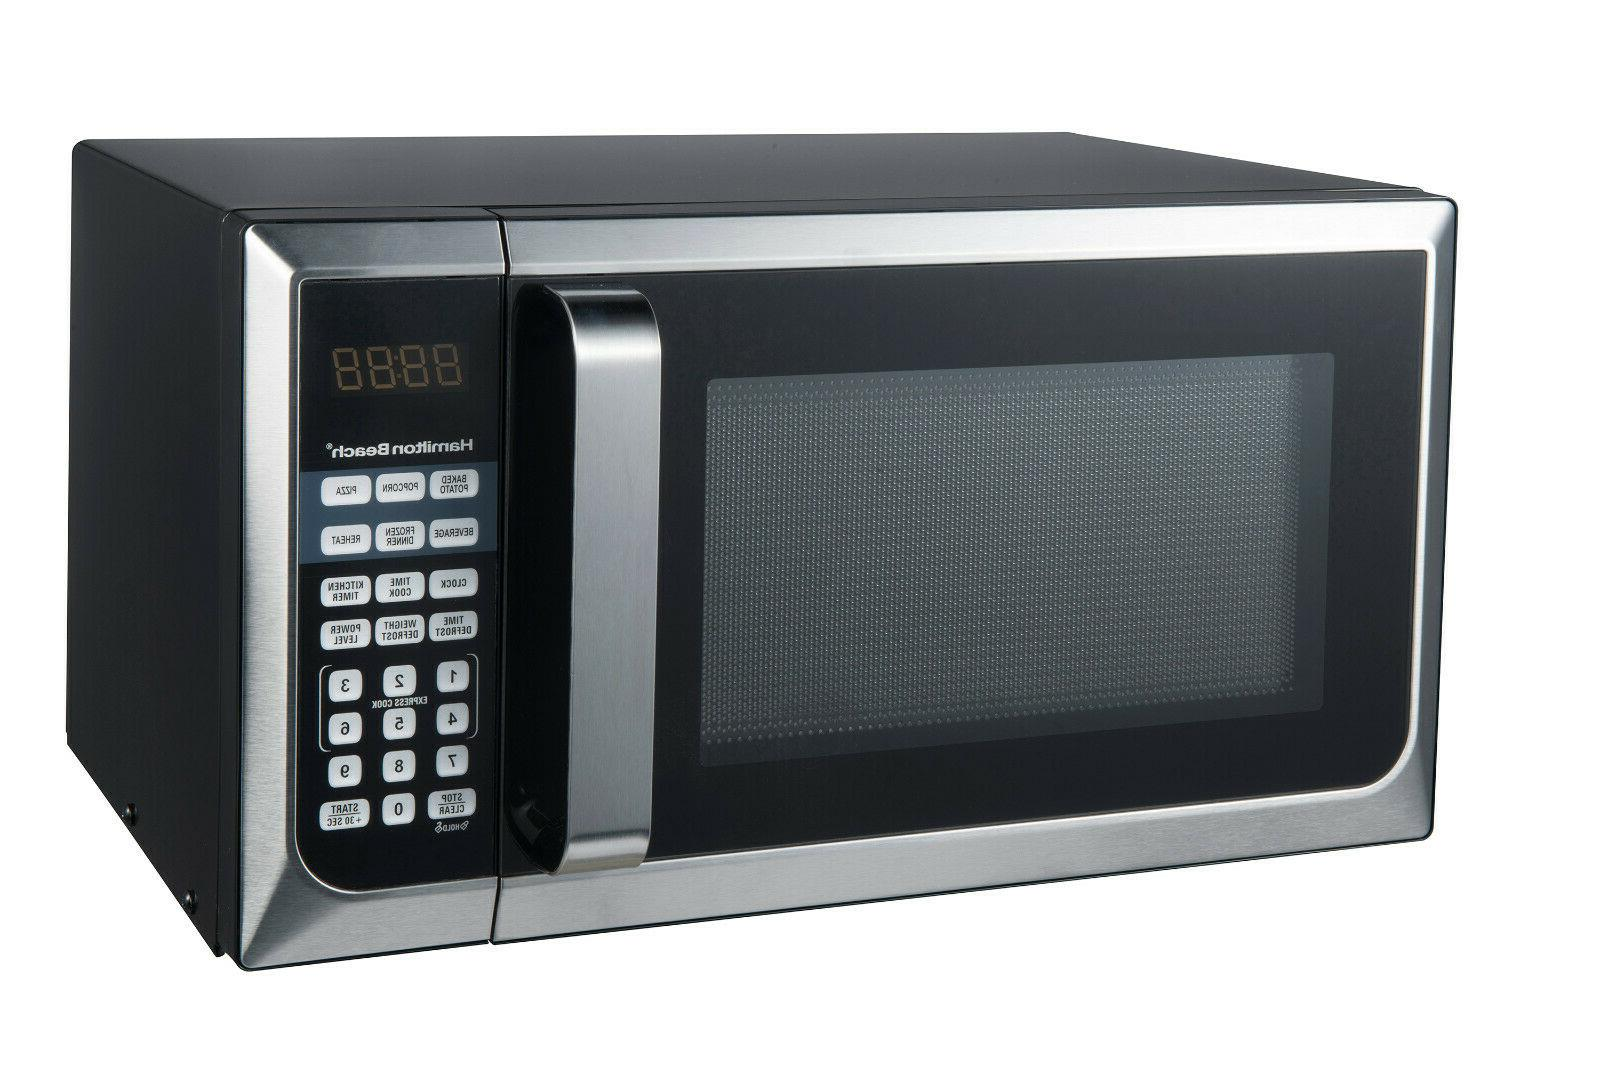 0.9 Cu. Ft. Stainless Steel Countertop Microwave Oven LED Di